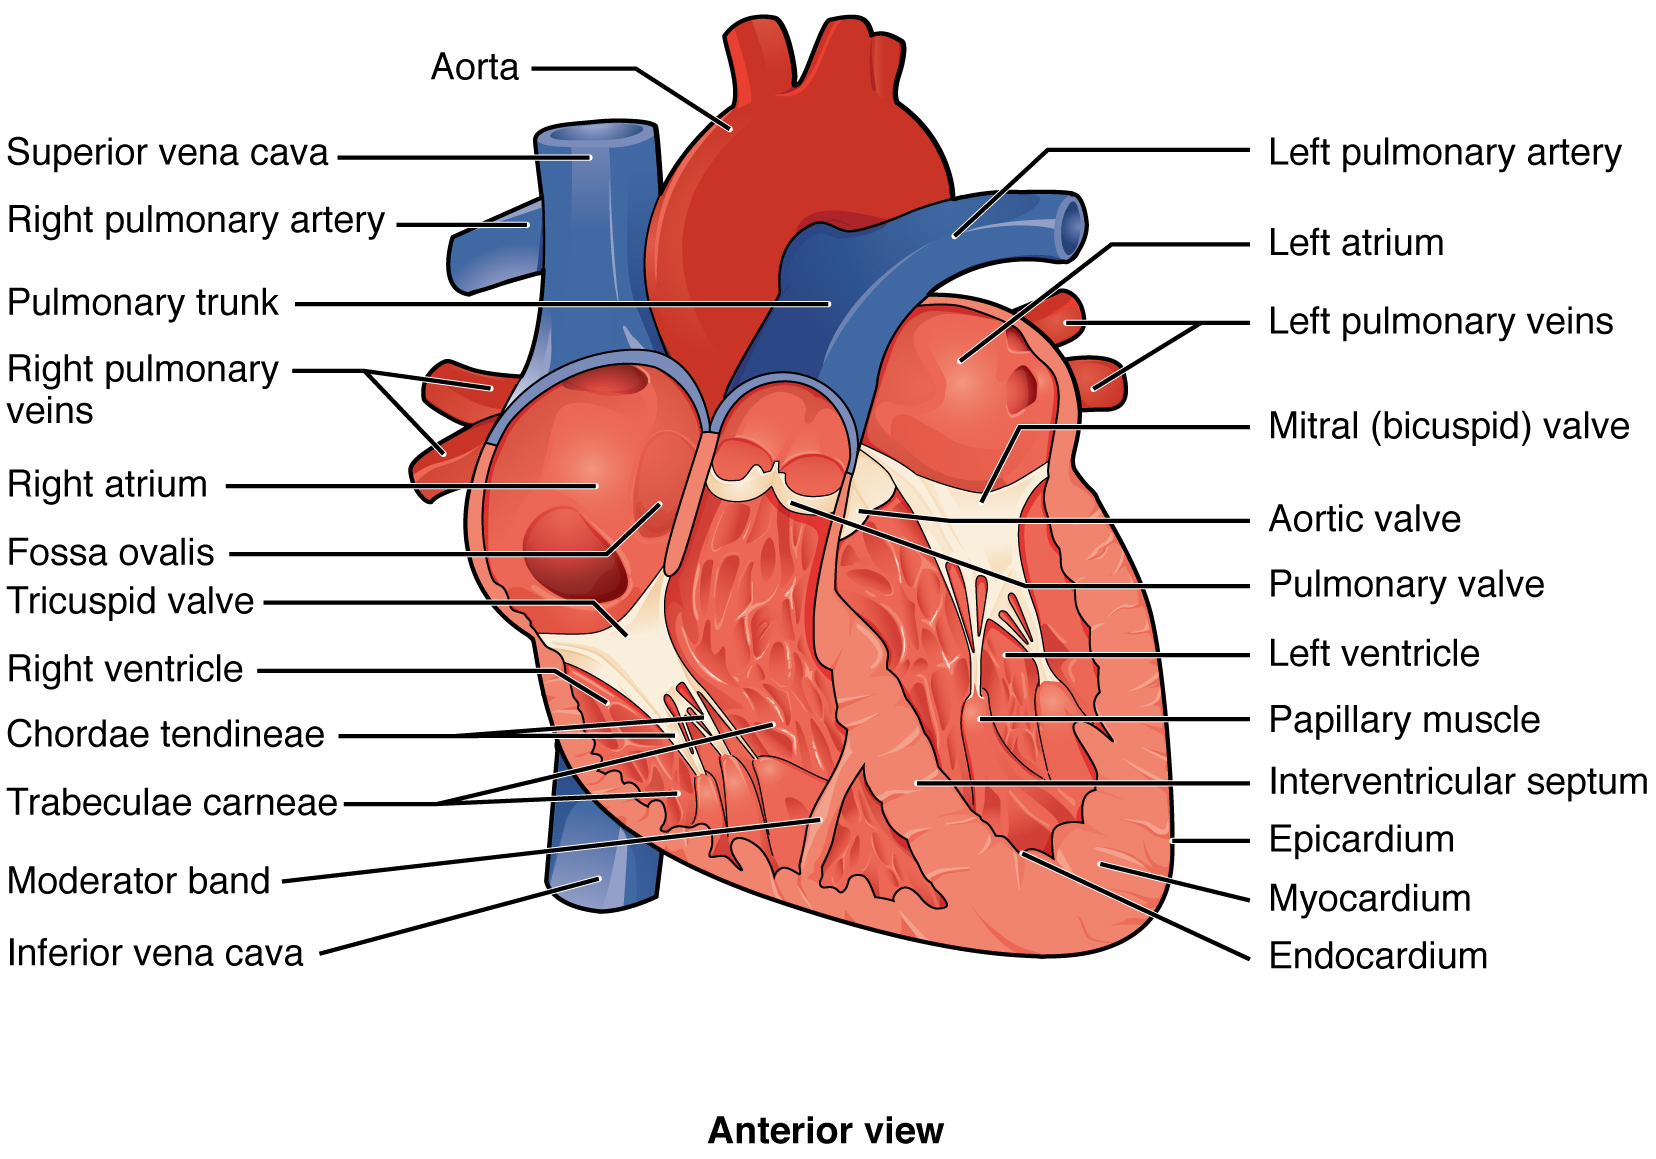 heart diagram inside ford f550 wiring internal structure of the contemporary health issues in this figure top panel shows image with major parts